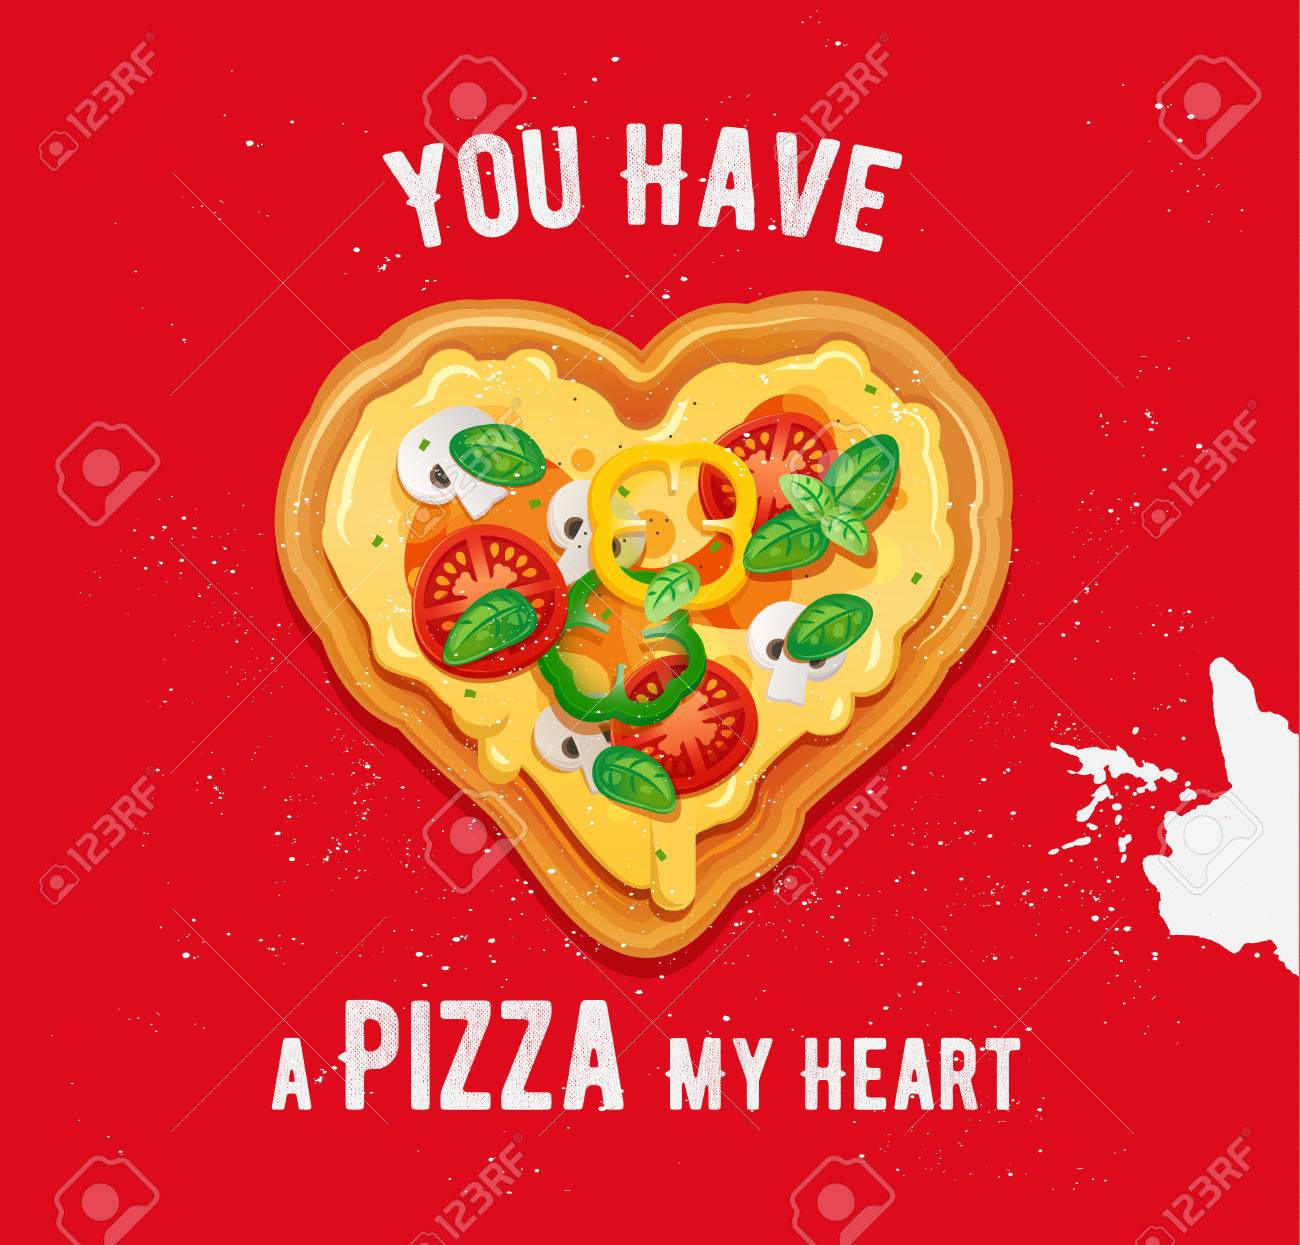 Pizza love card design with funny quote on red background.